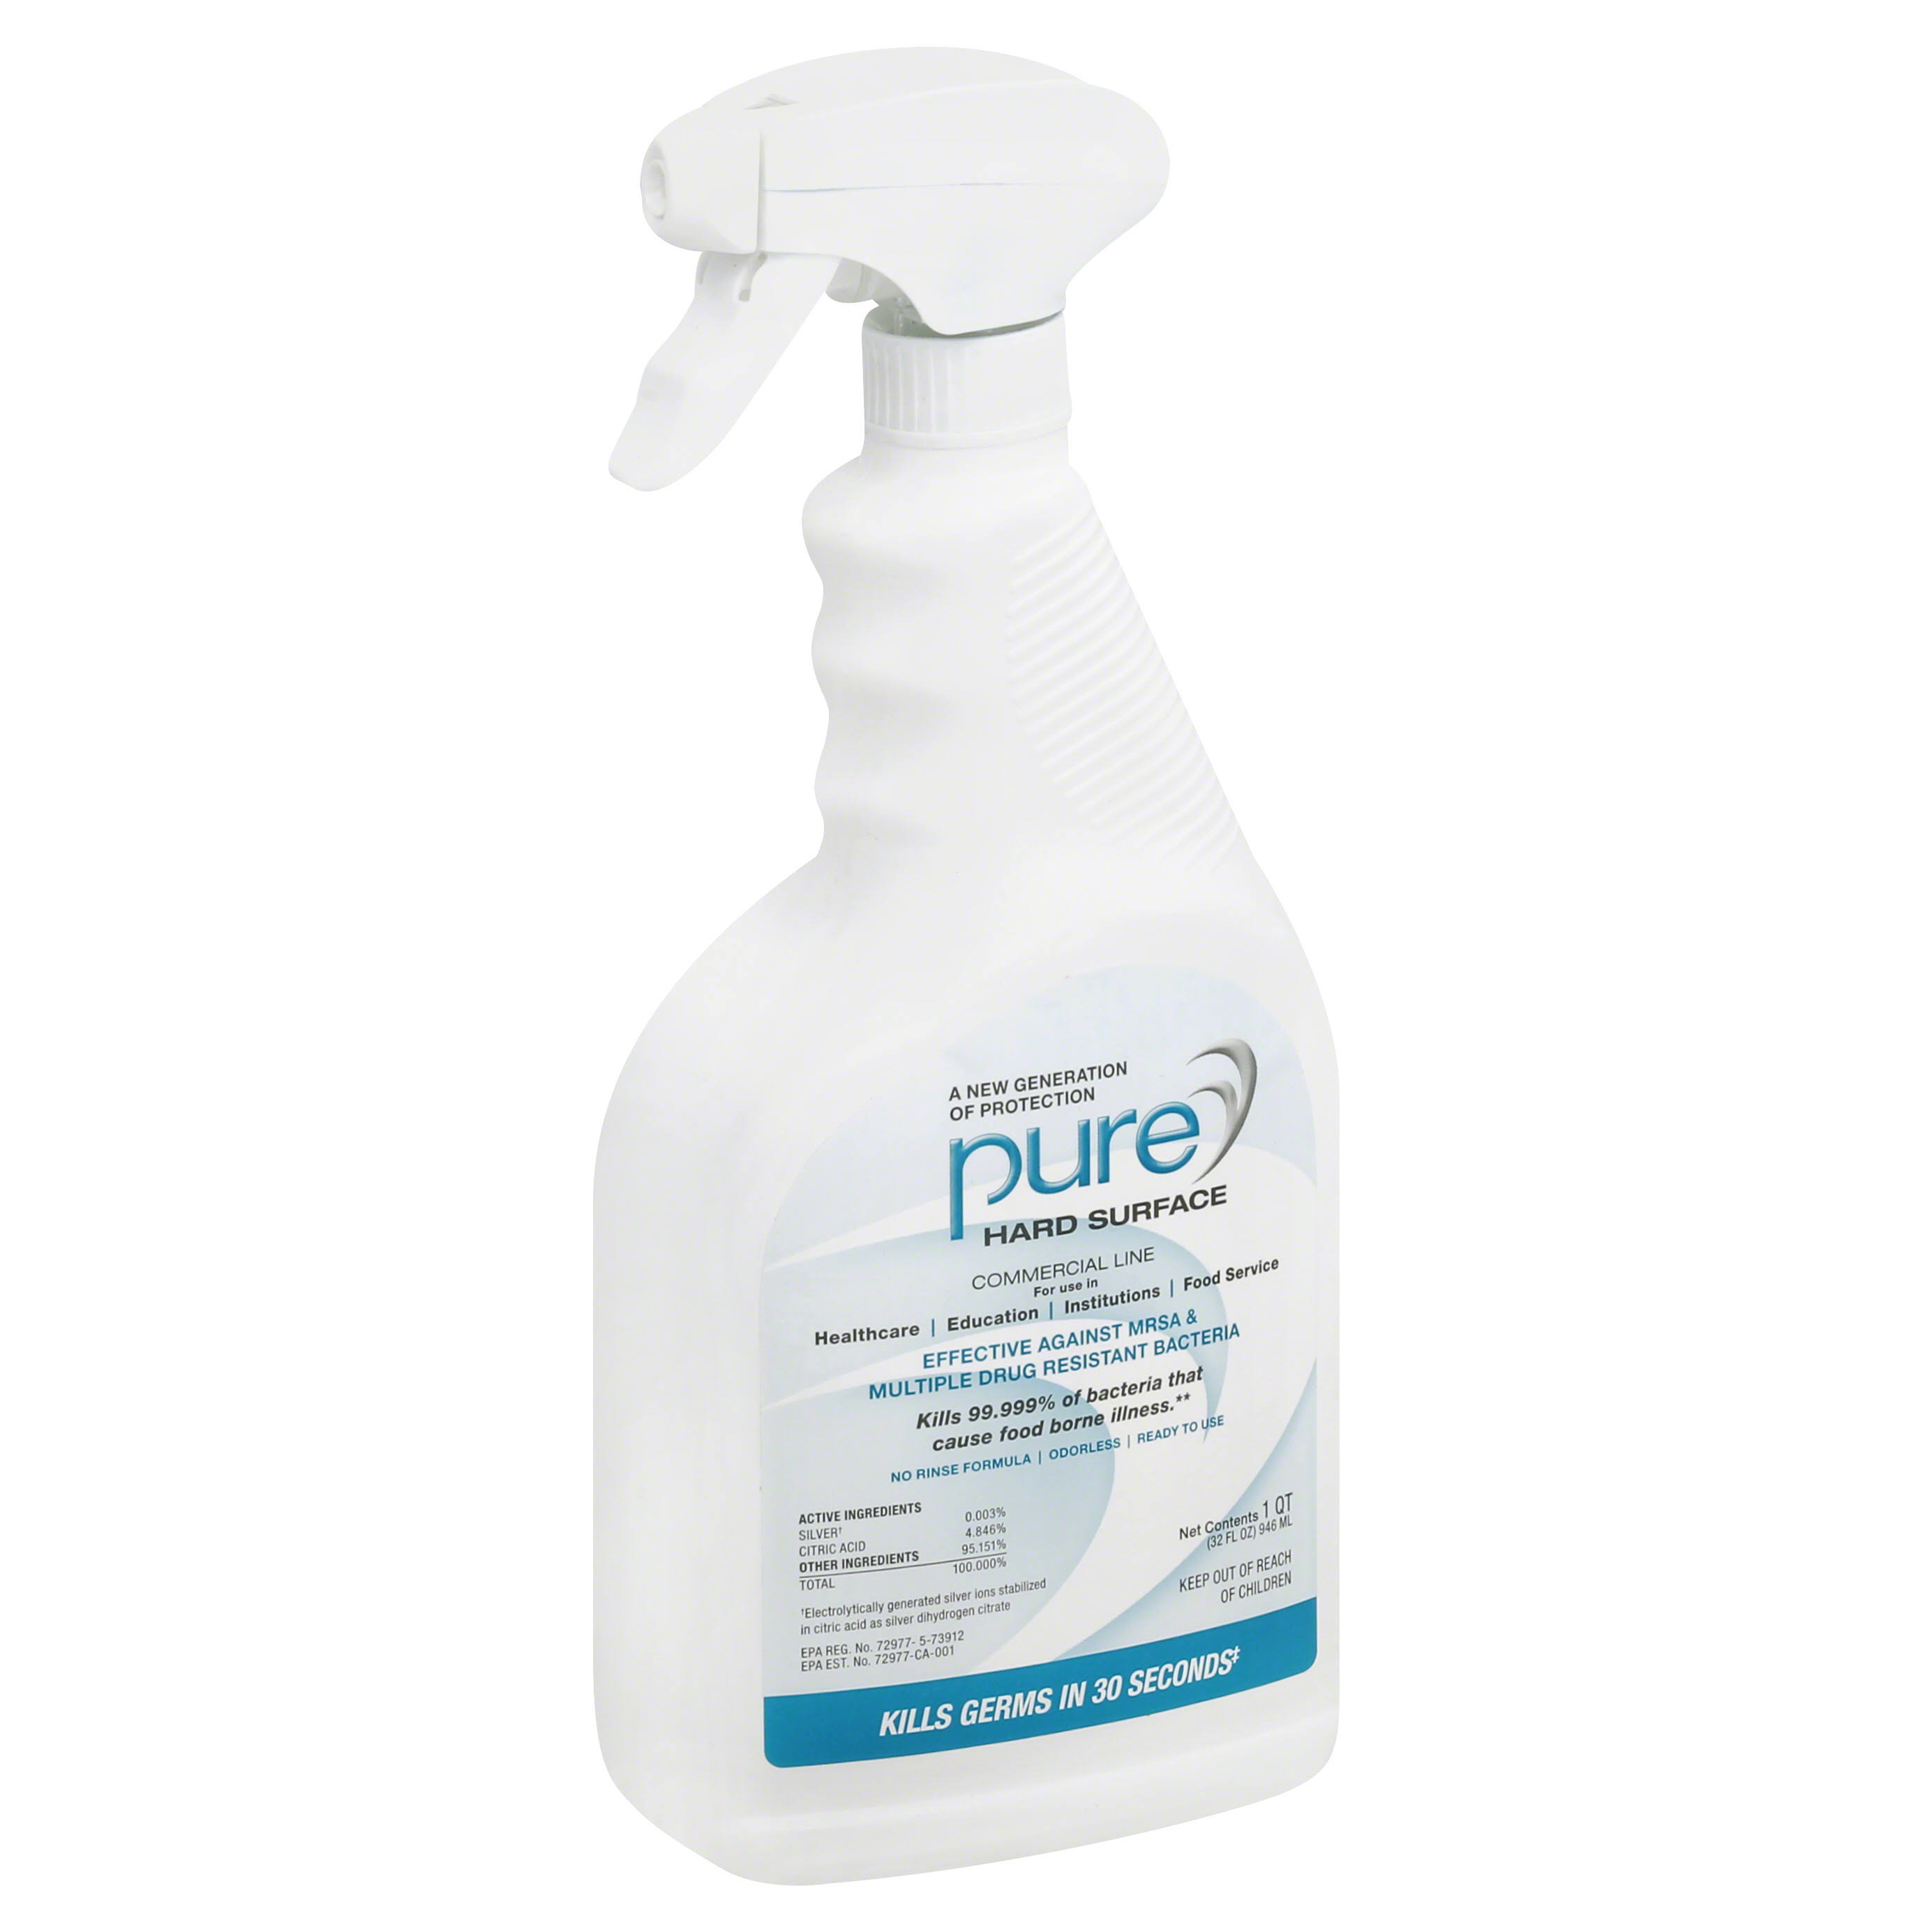 Pure Hard Surface, Protection, Commercial Line - 32 fl oz